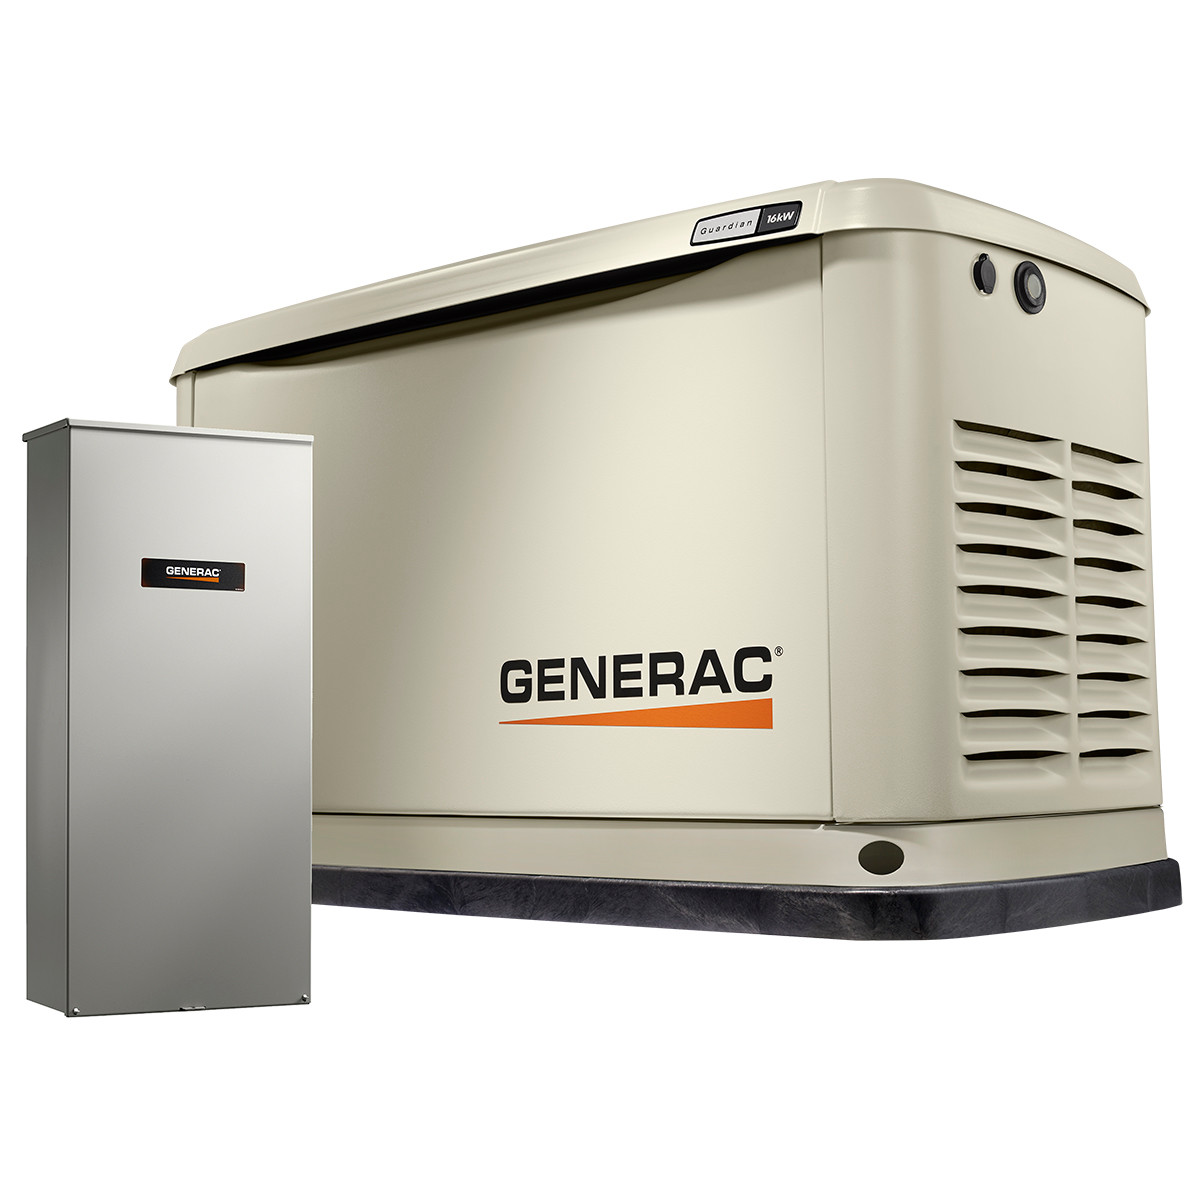 generac 70361 16kw guardian generator with wi fi 100a 16 circuit transfer switch [ 1200 x 1200 Pixel ]